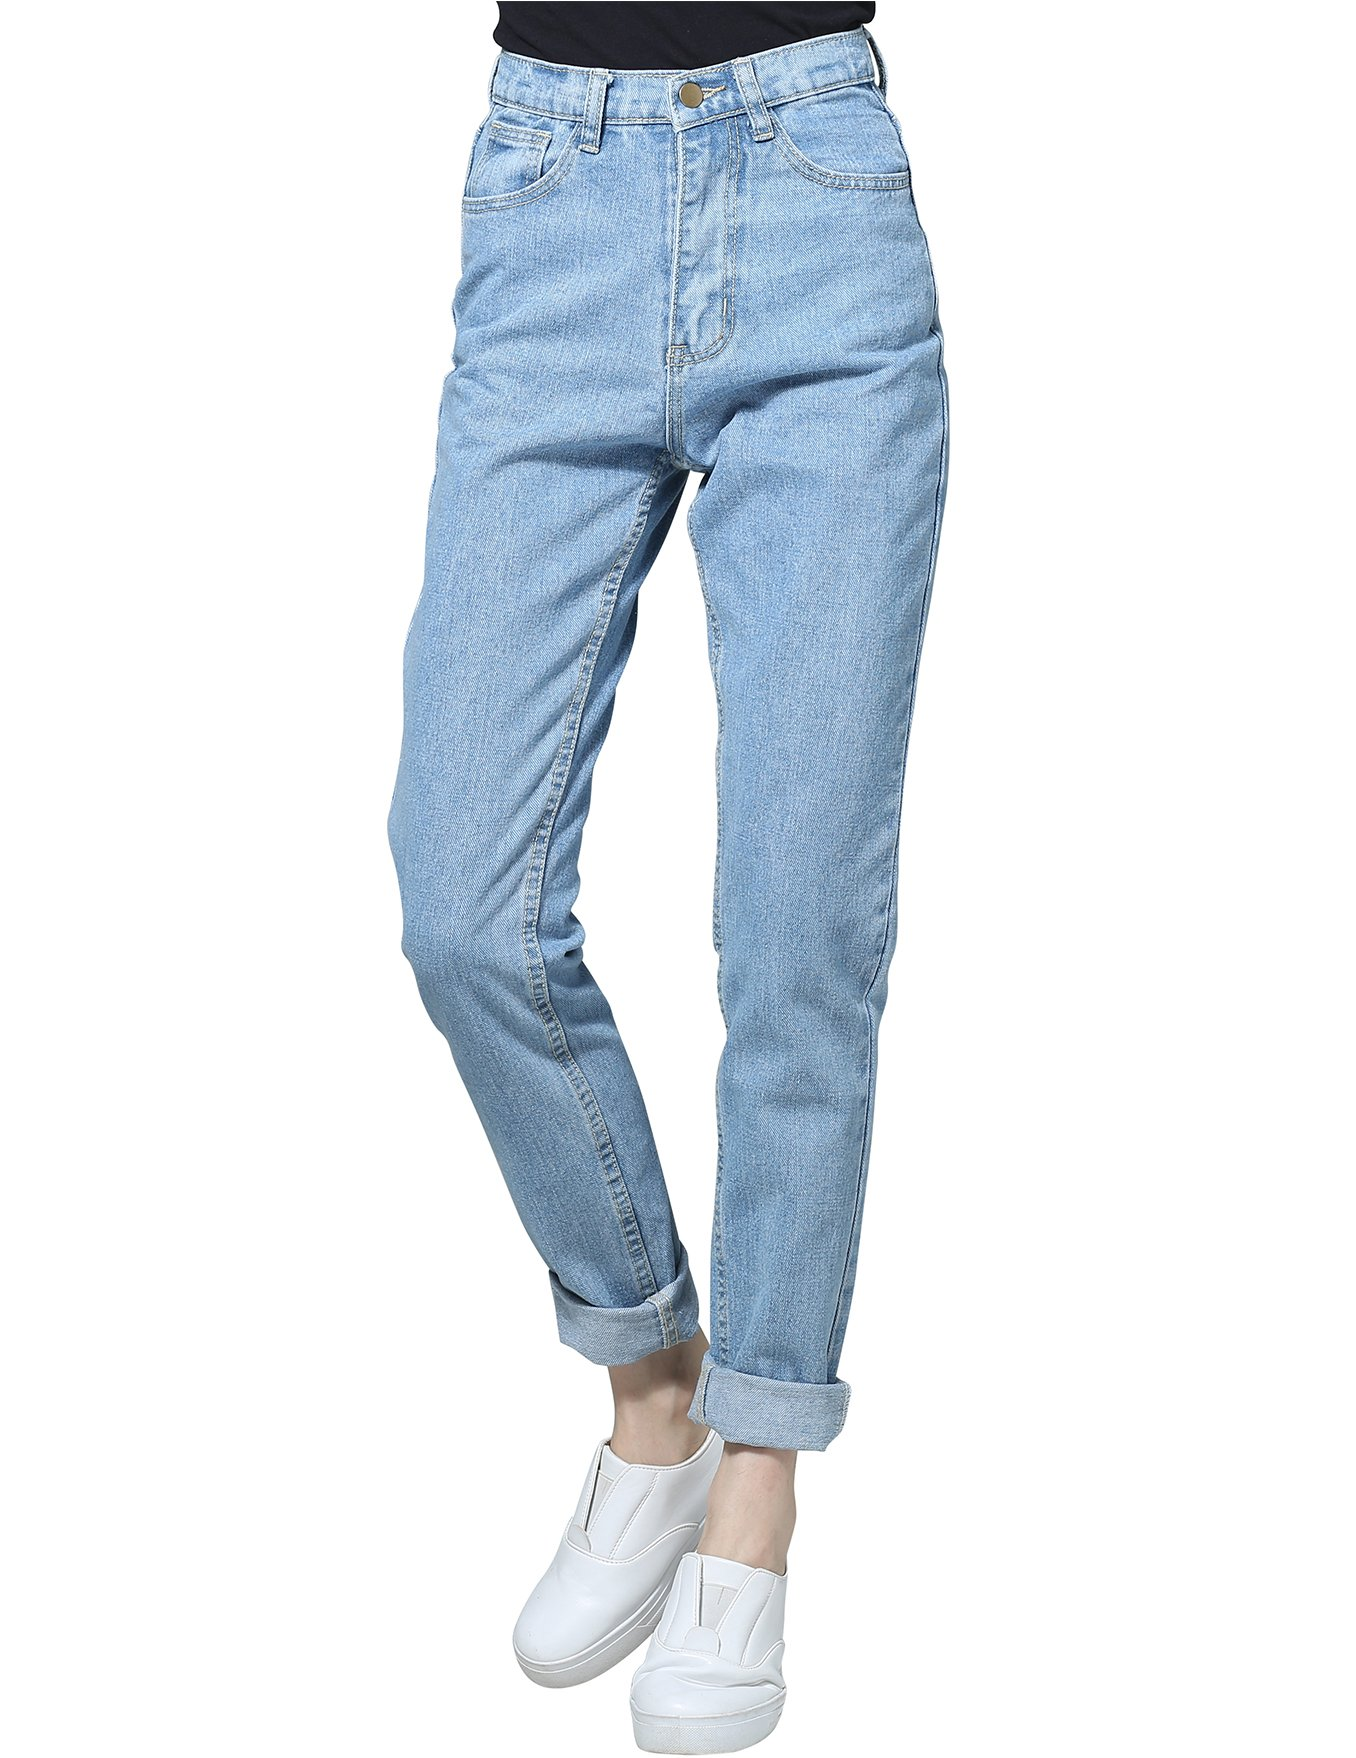 c0cf66b28 Galleon - Boyfriend Jeans For Women High Waisted Jeans Skinny Feminino  Pocket Jeans Zipper Jeans Women Light Blue 26